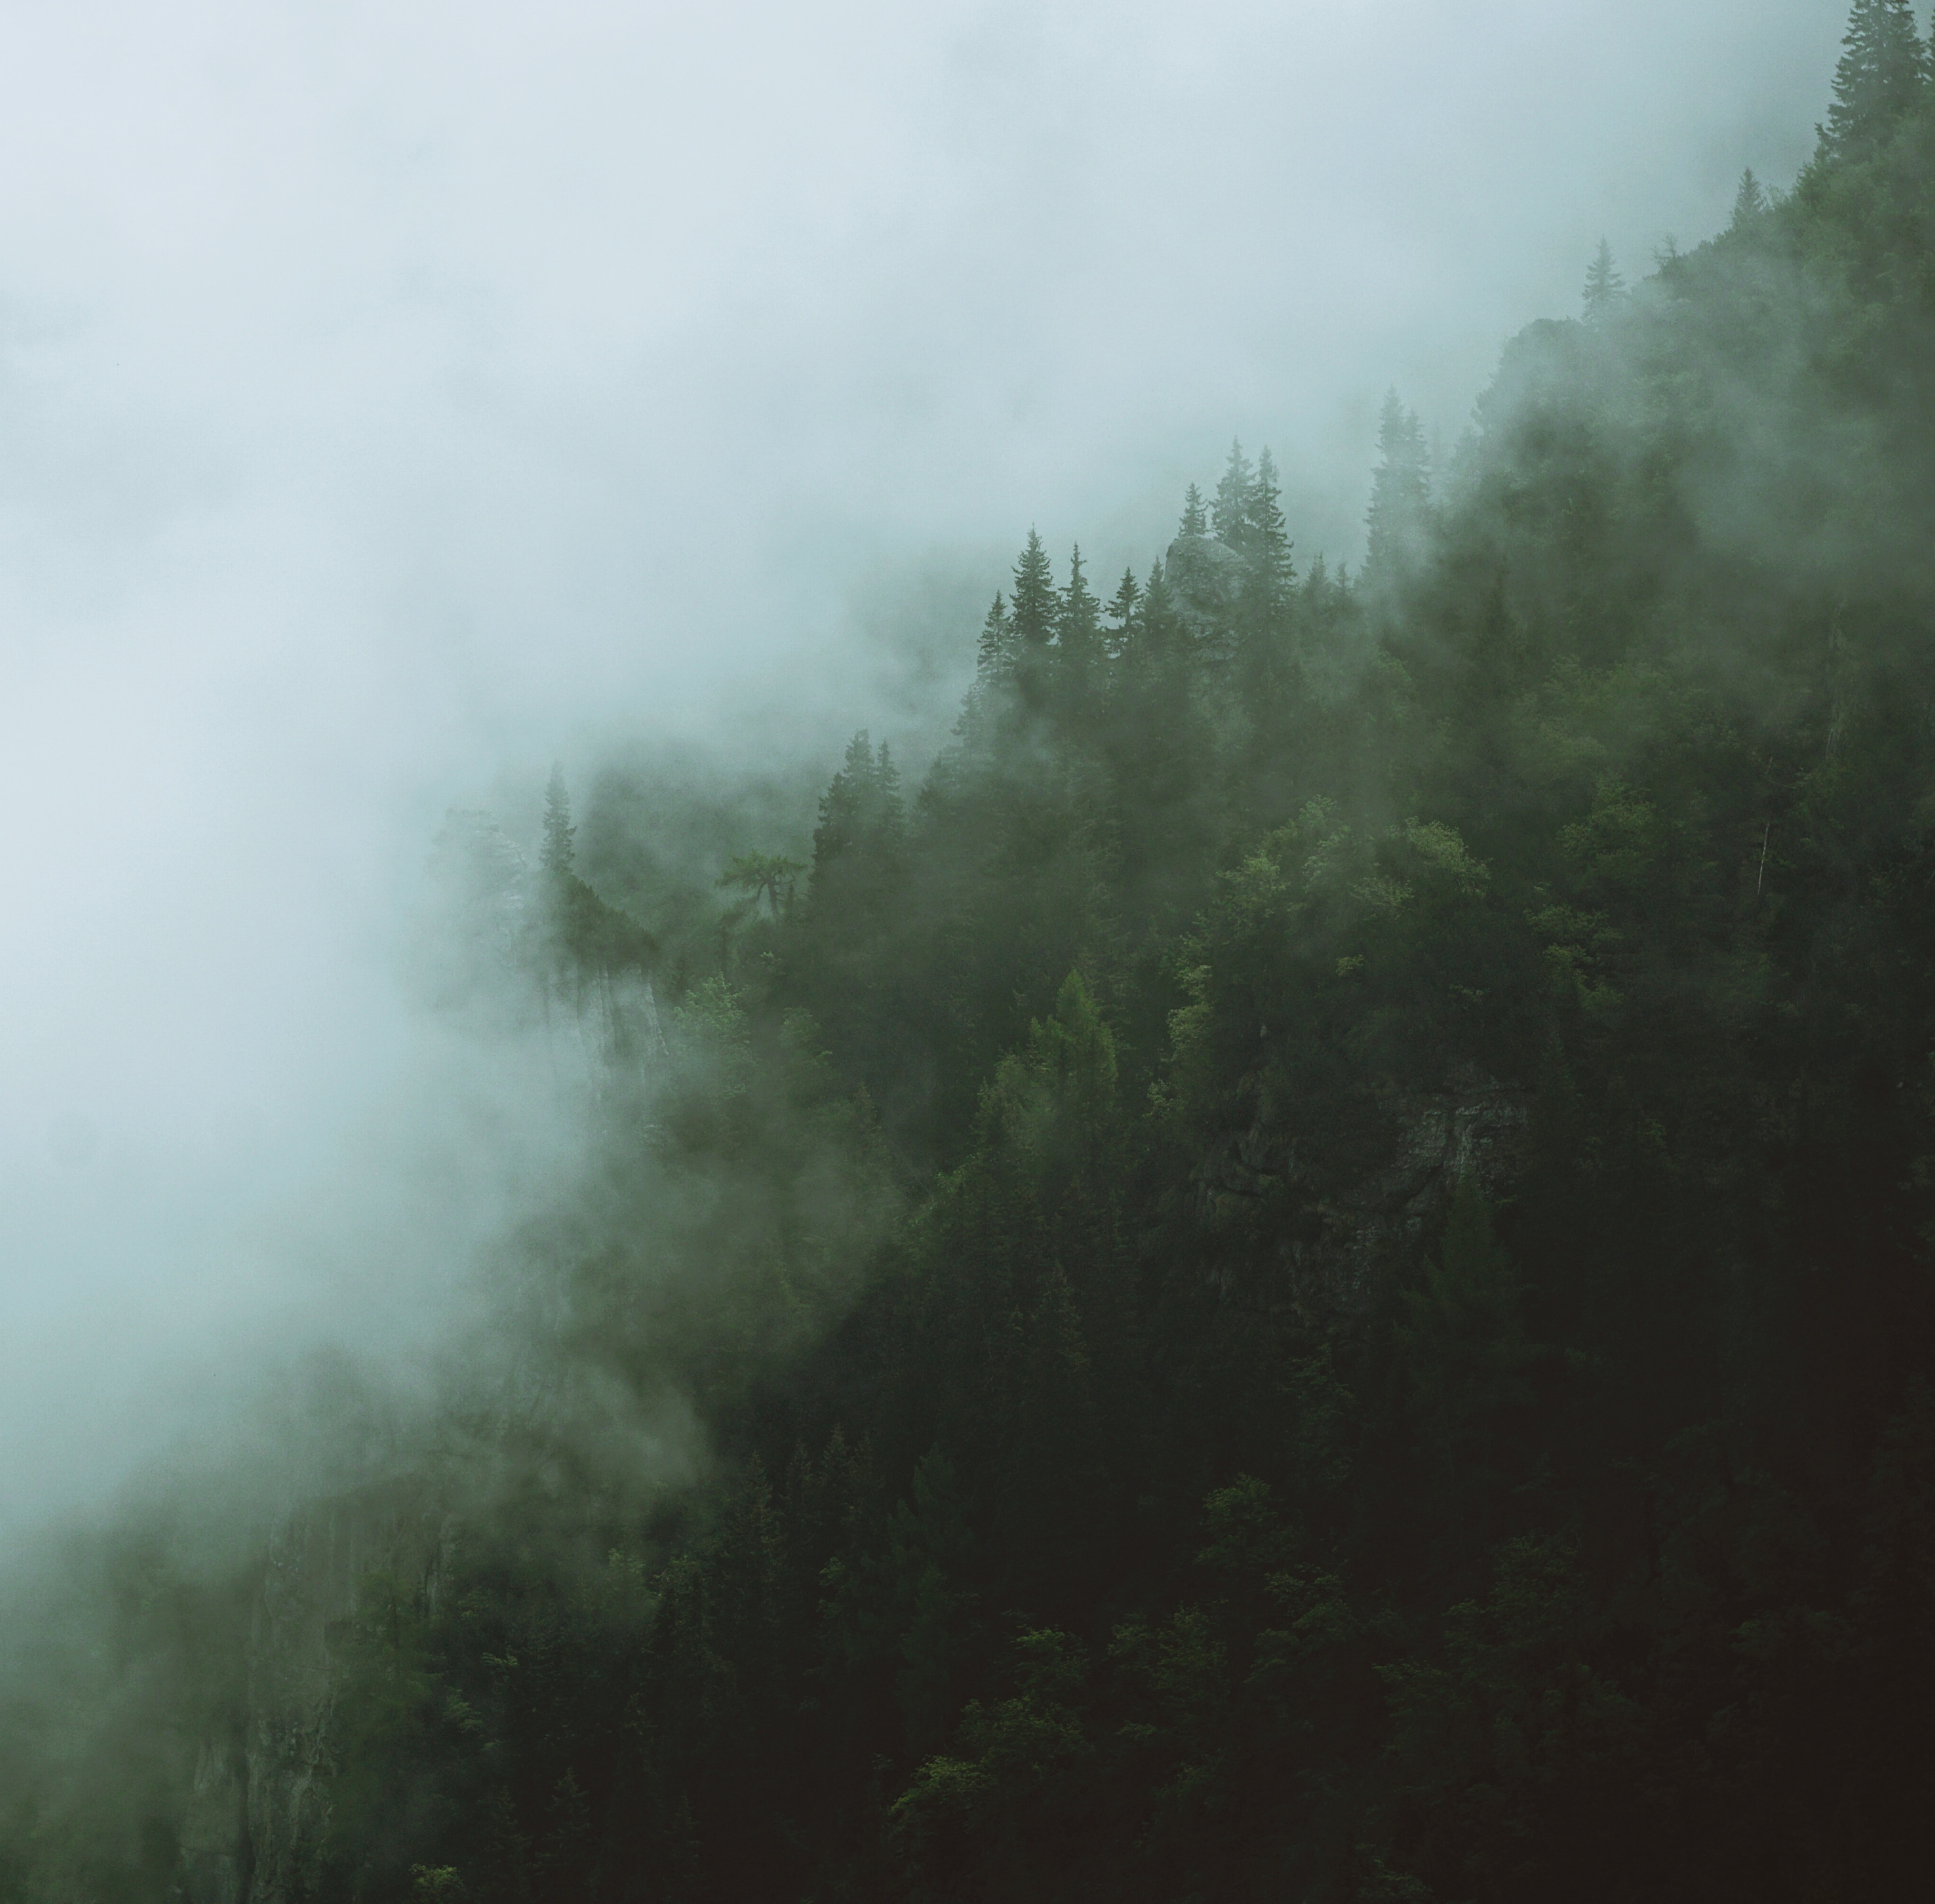 forest covered in white fog